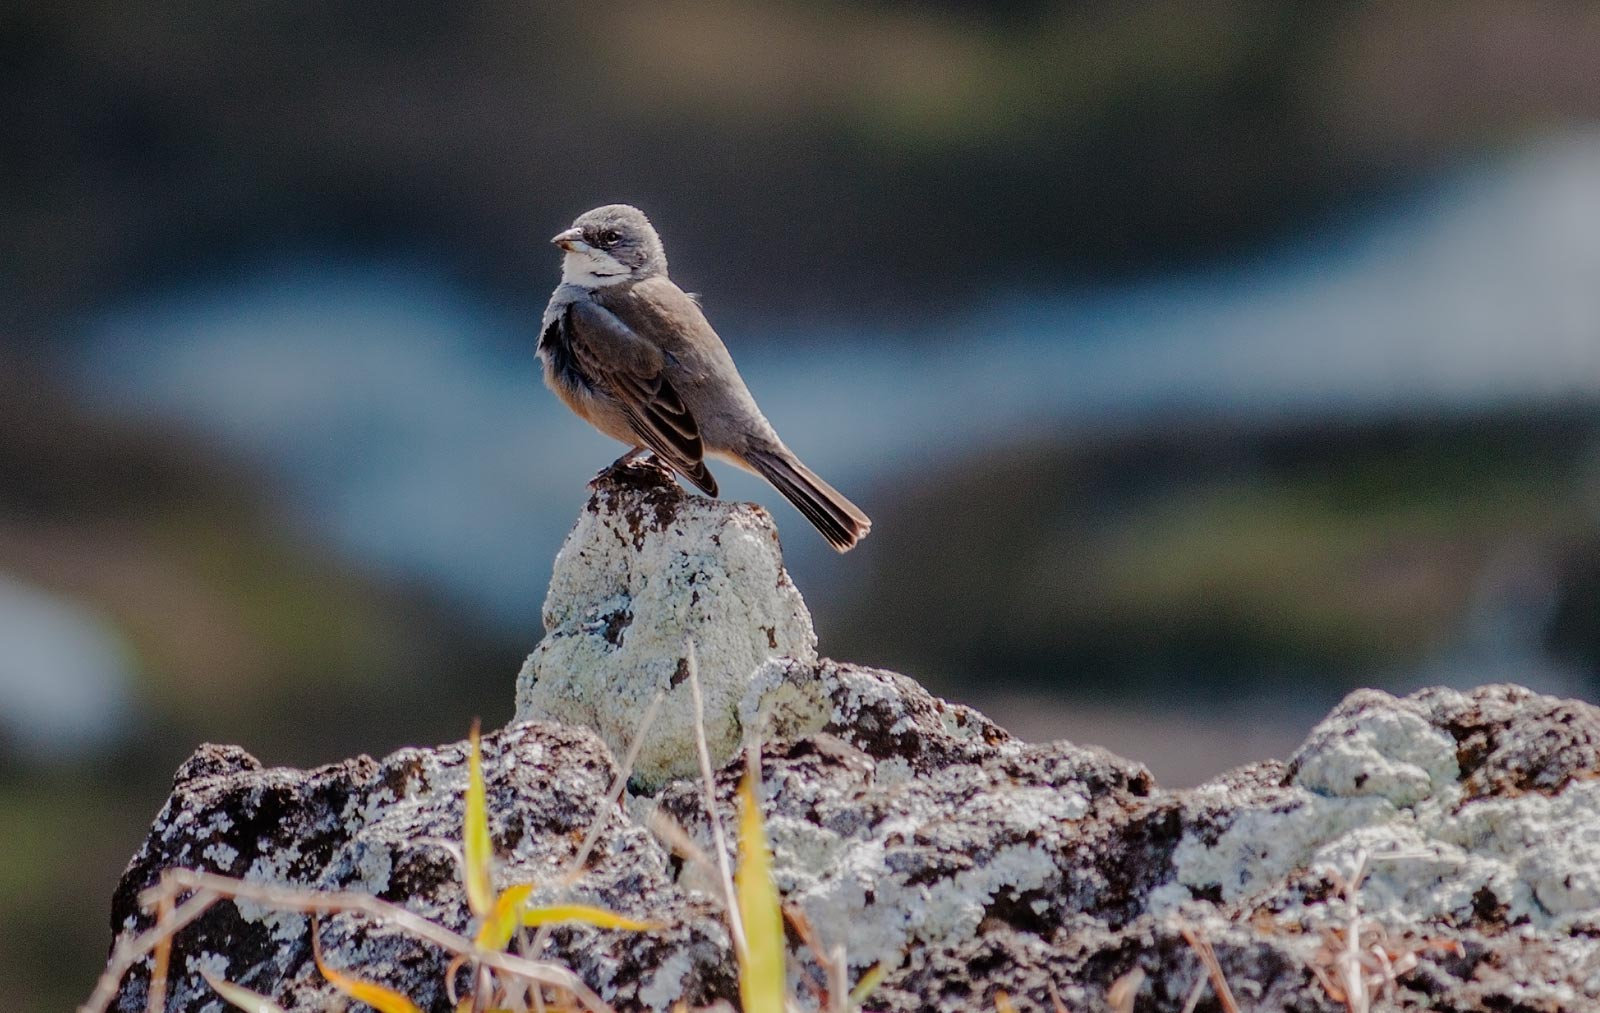 Common Diucal Finch - Easter Island by TarJakArt